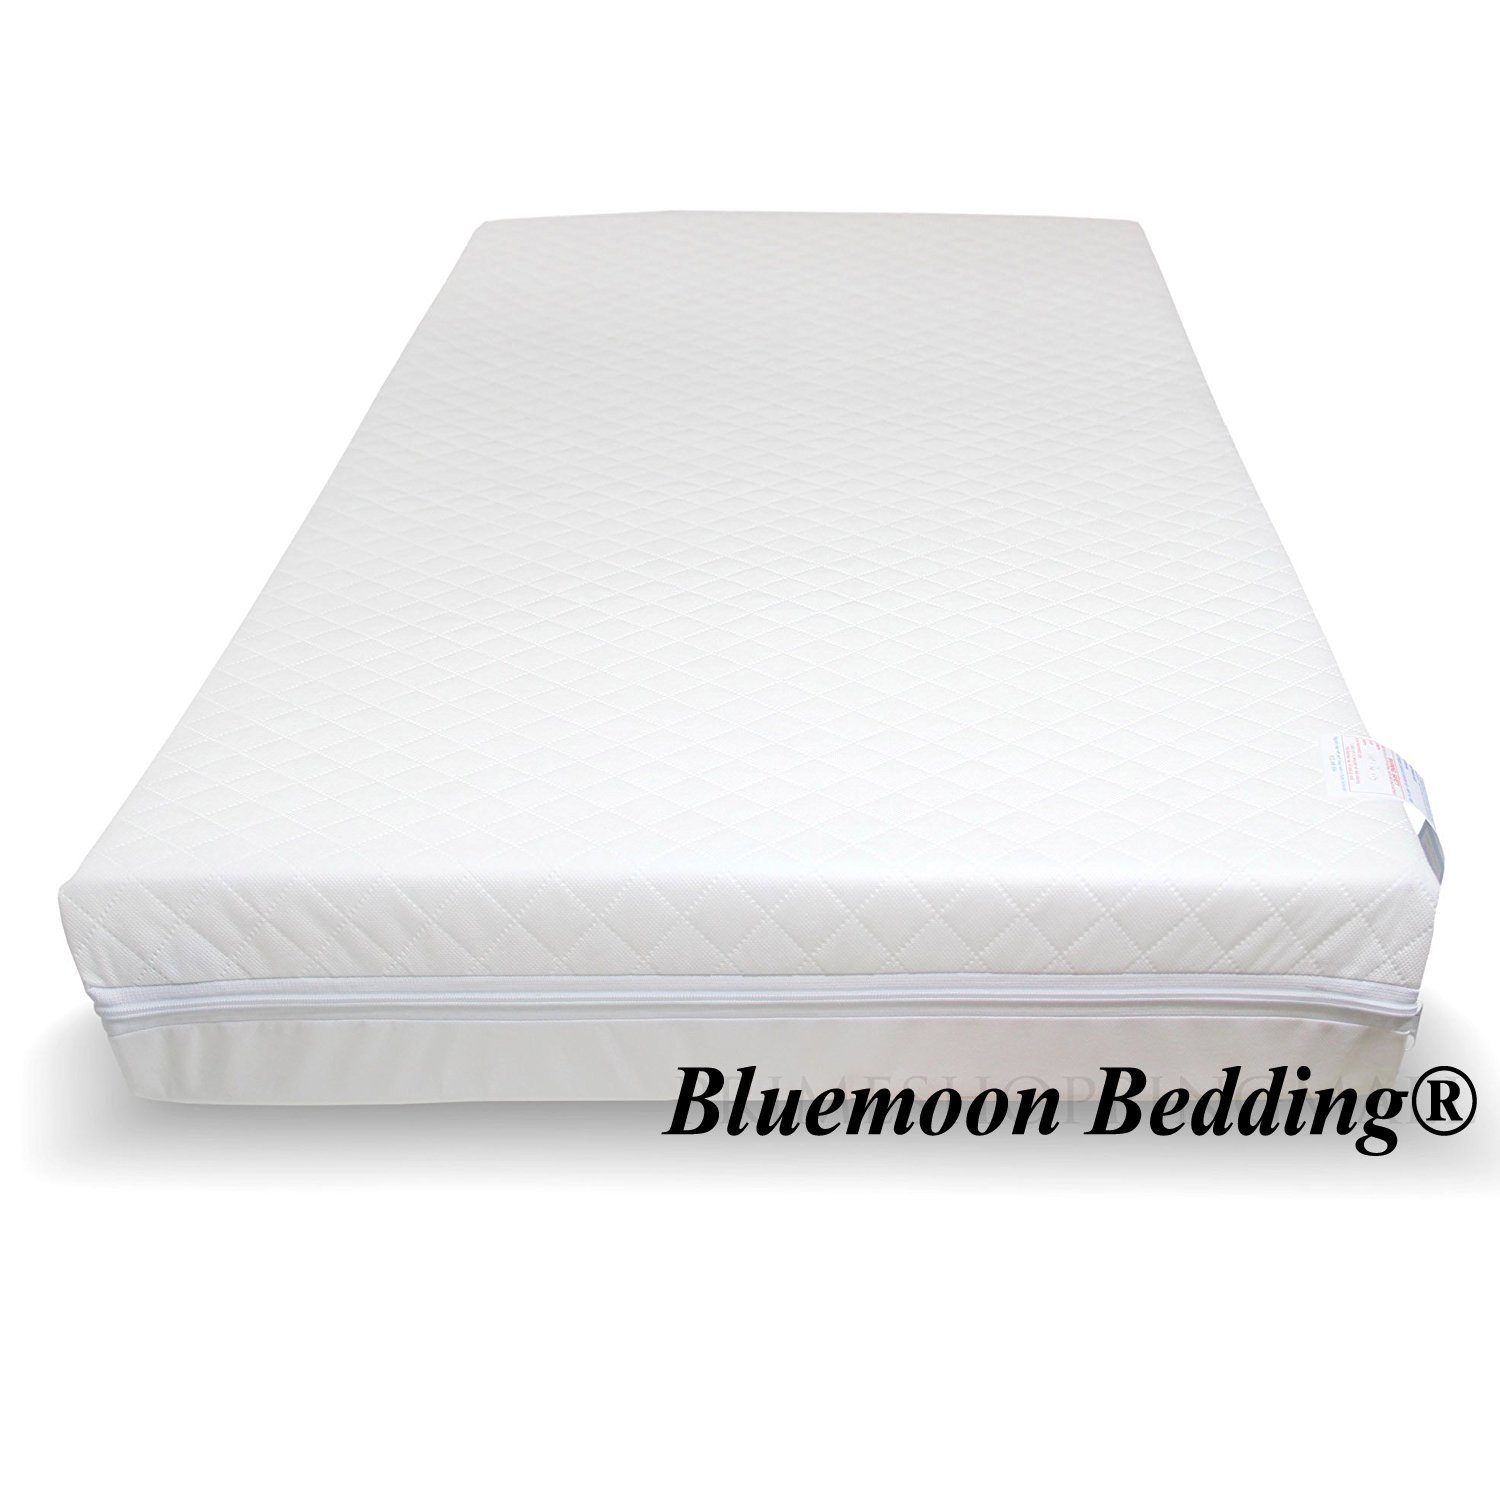 Babymatras 110 X 55.Baby Travel Cot Mattress 112 X 55 X 10 Cm Quilted Breathable